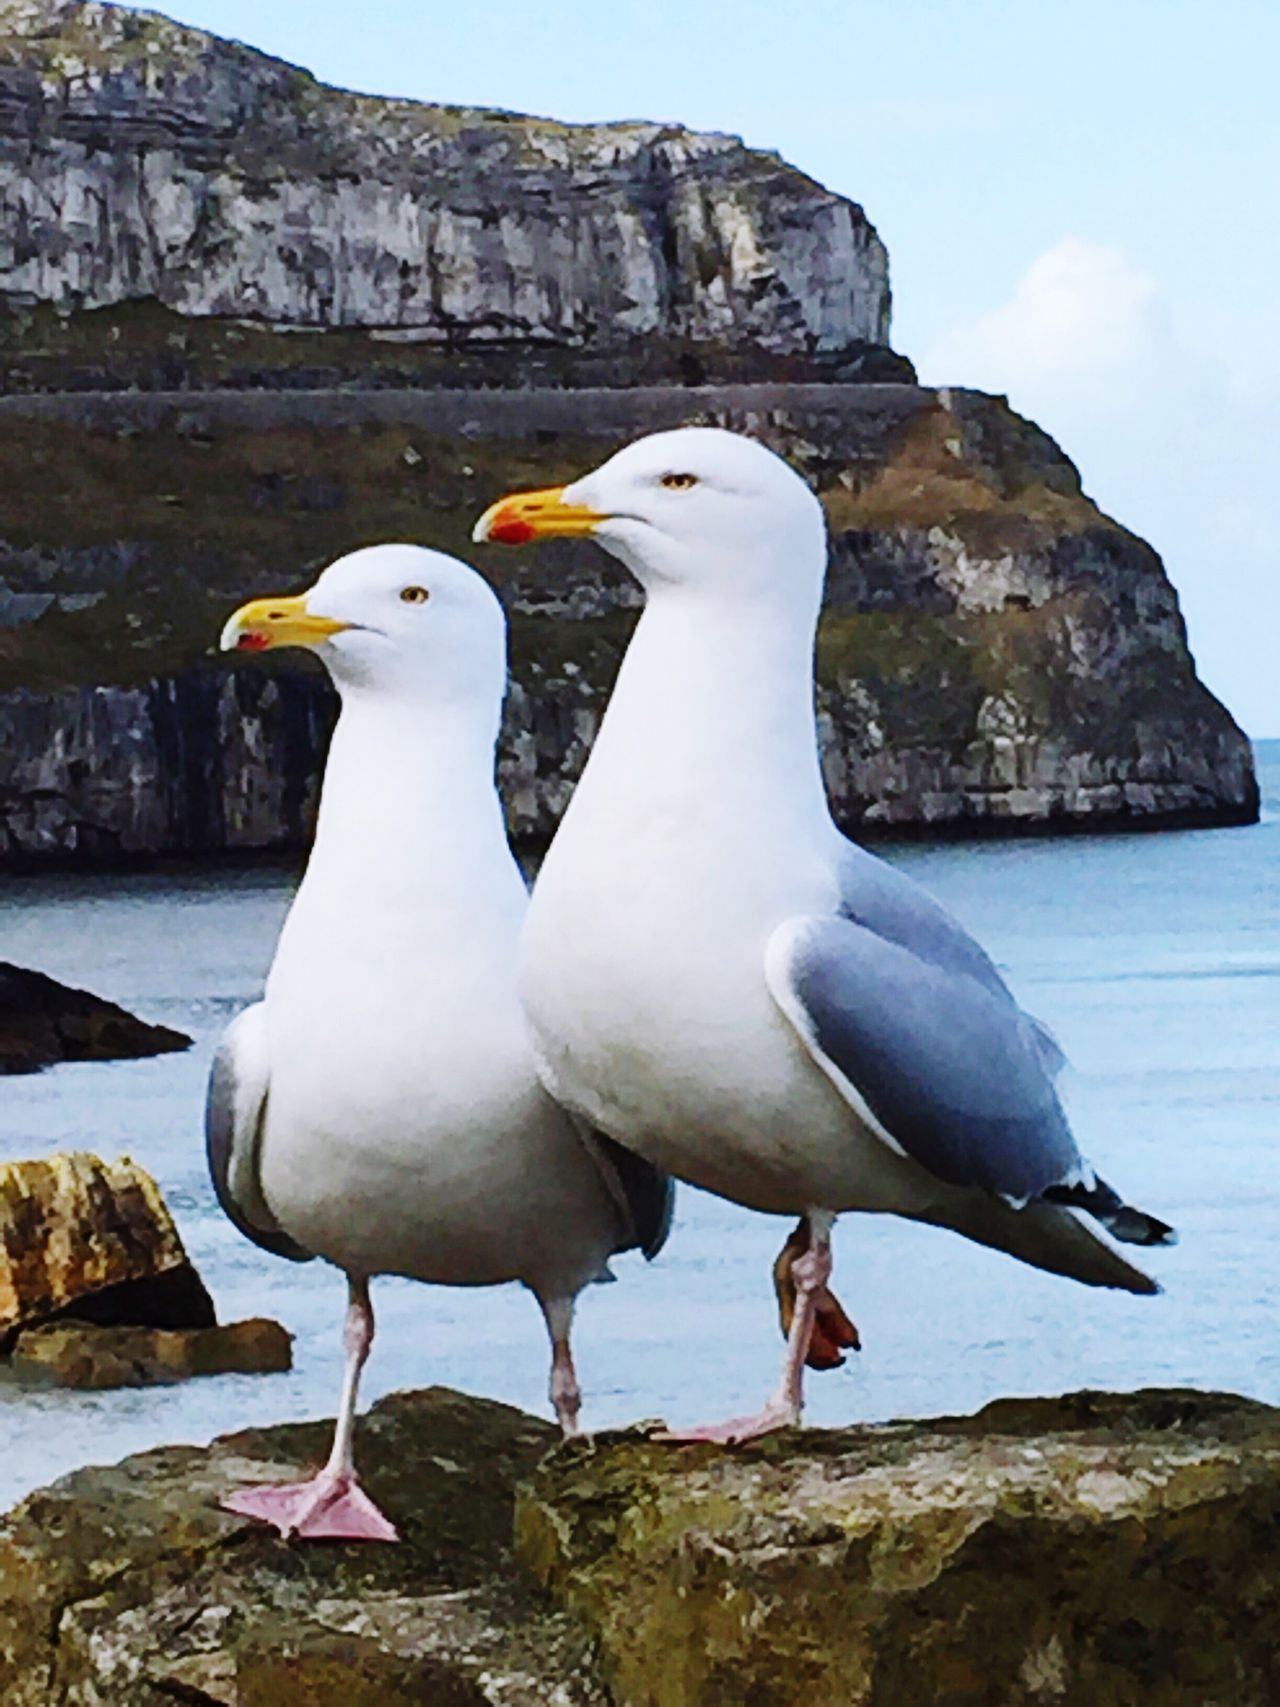 Seagulls In Love Wild Life At Its Best First Eyeem Photo Animals In The Wild Animal Wildlife Outdoors Nature Animal Themes Beauty In Nature Bird